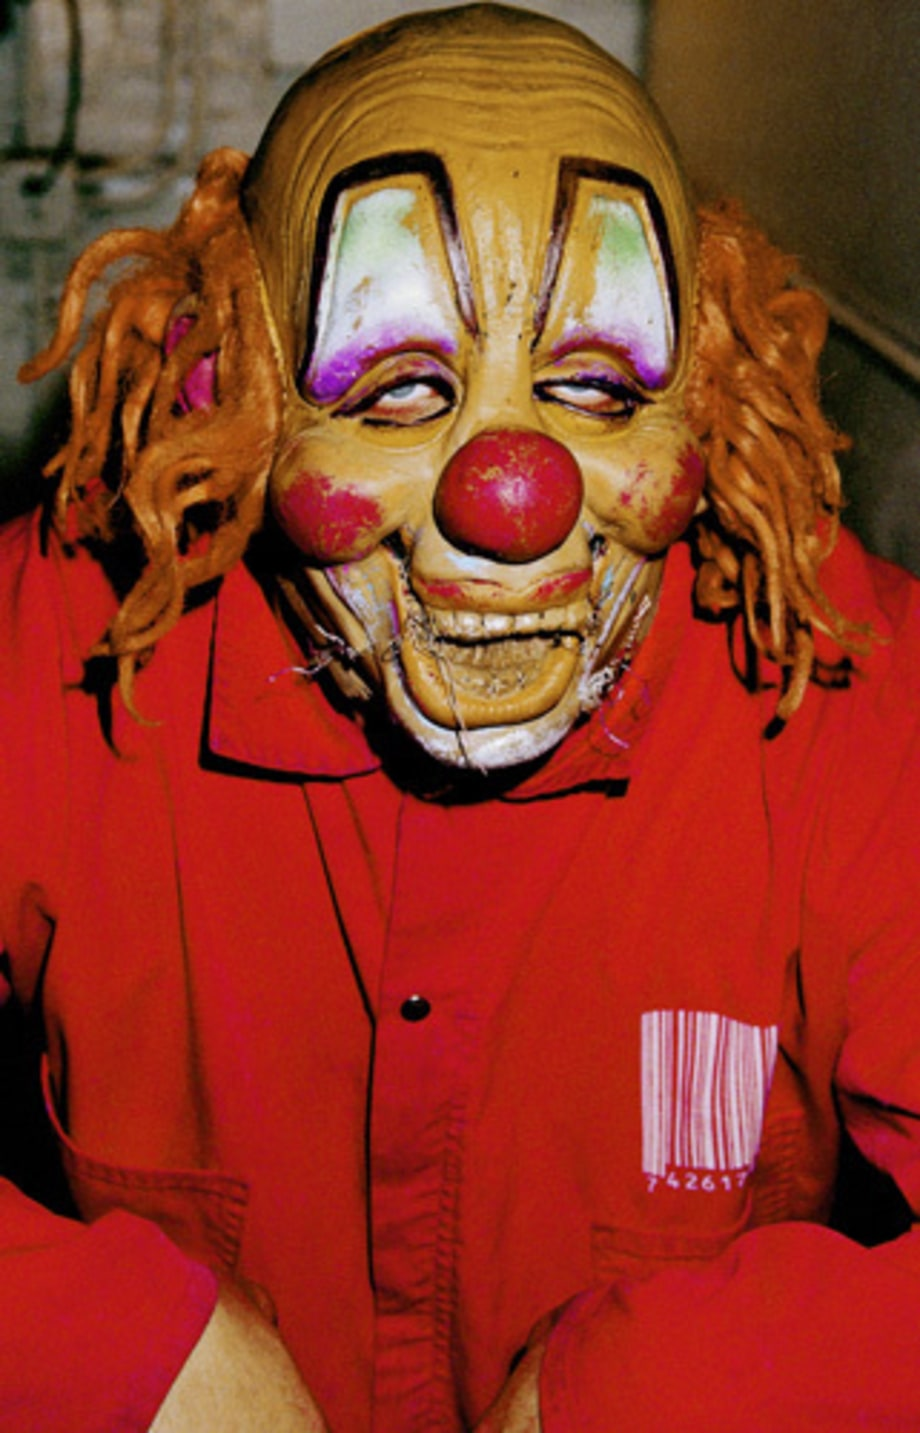 Shawn Crahan of Slipknot